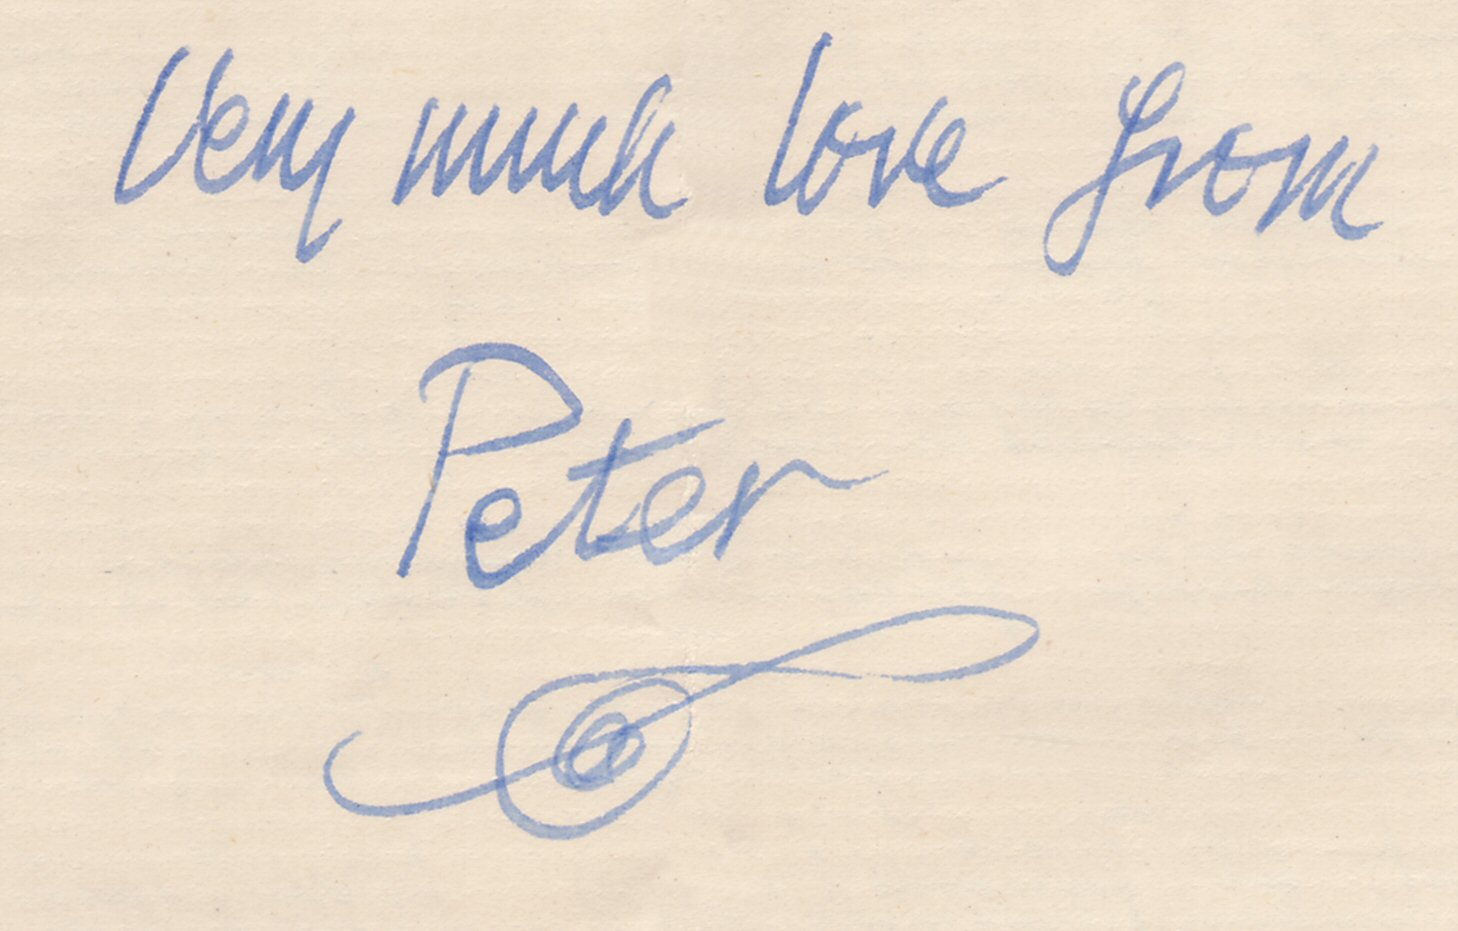 Peter Tranchell's signature and characteristic horizontal treble clef, from a family letter